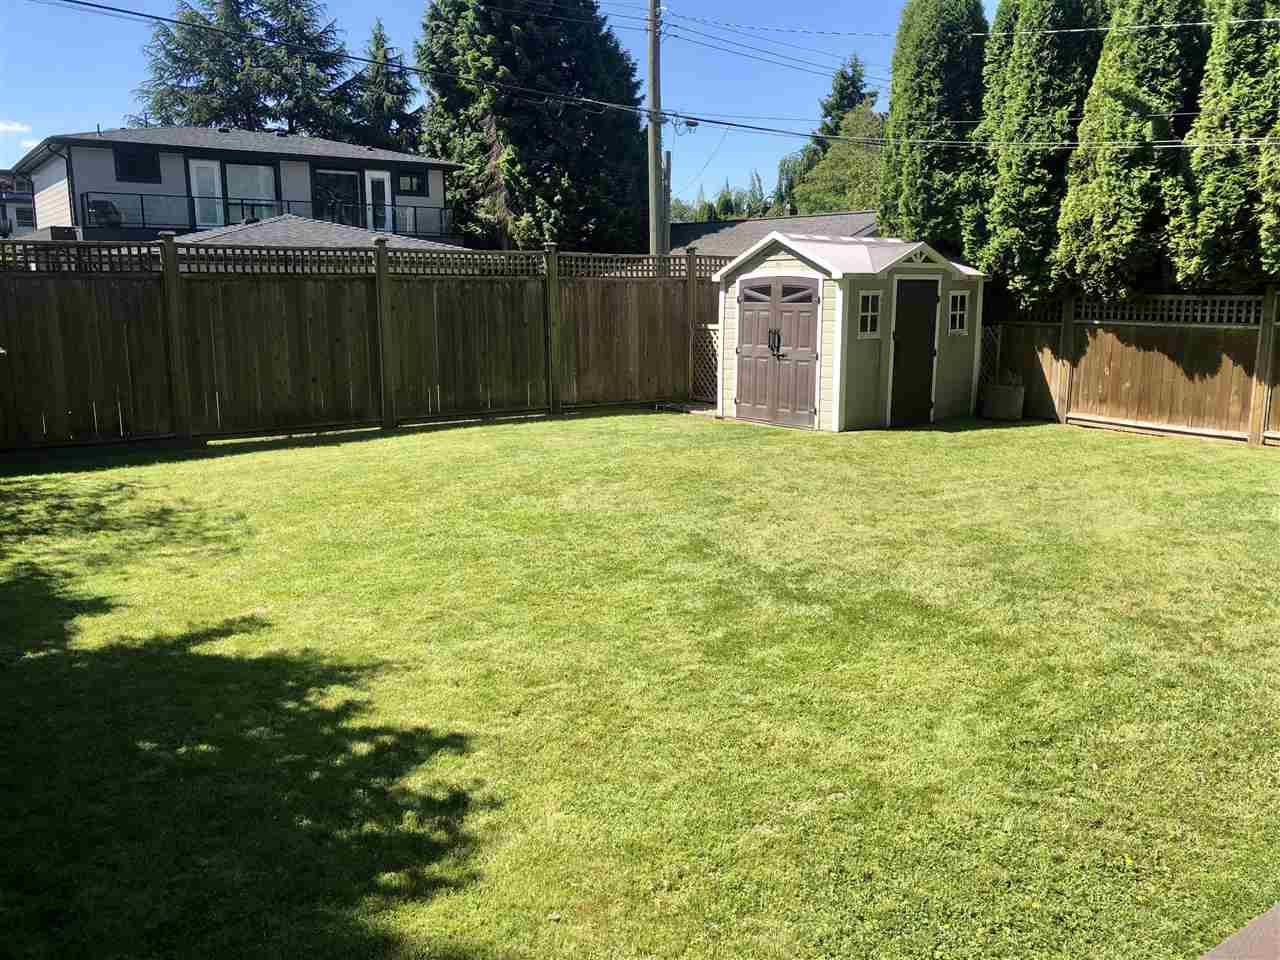 Photo of 1341 HOPE ROAD, North Vancouver, BC V7P 1W6 (MLS # R2587374)